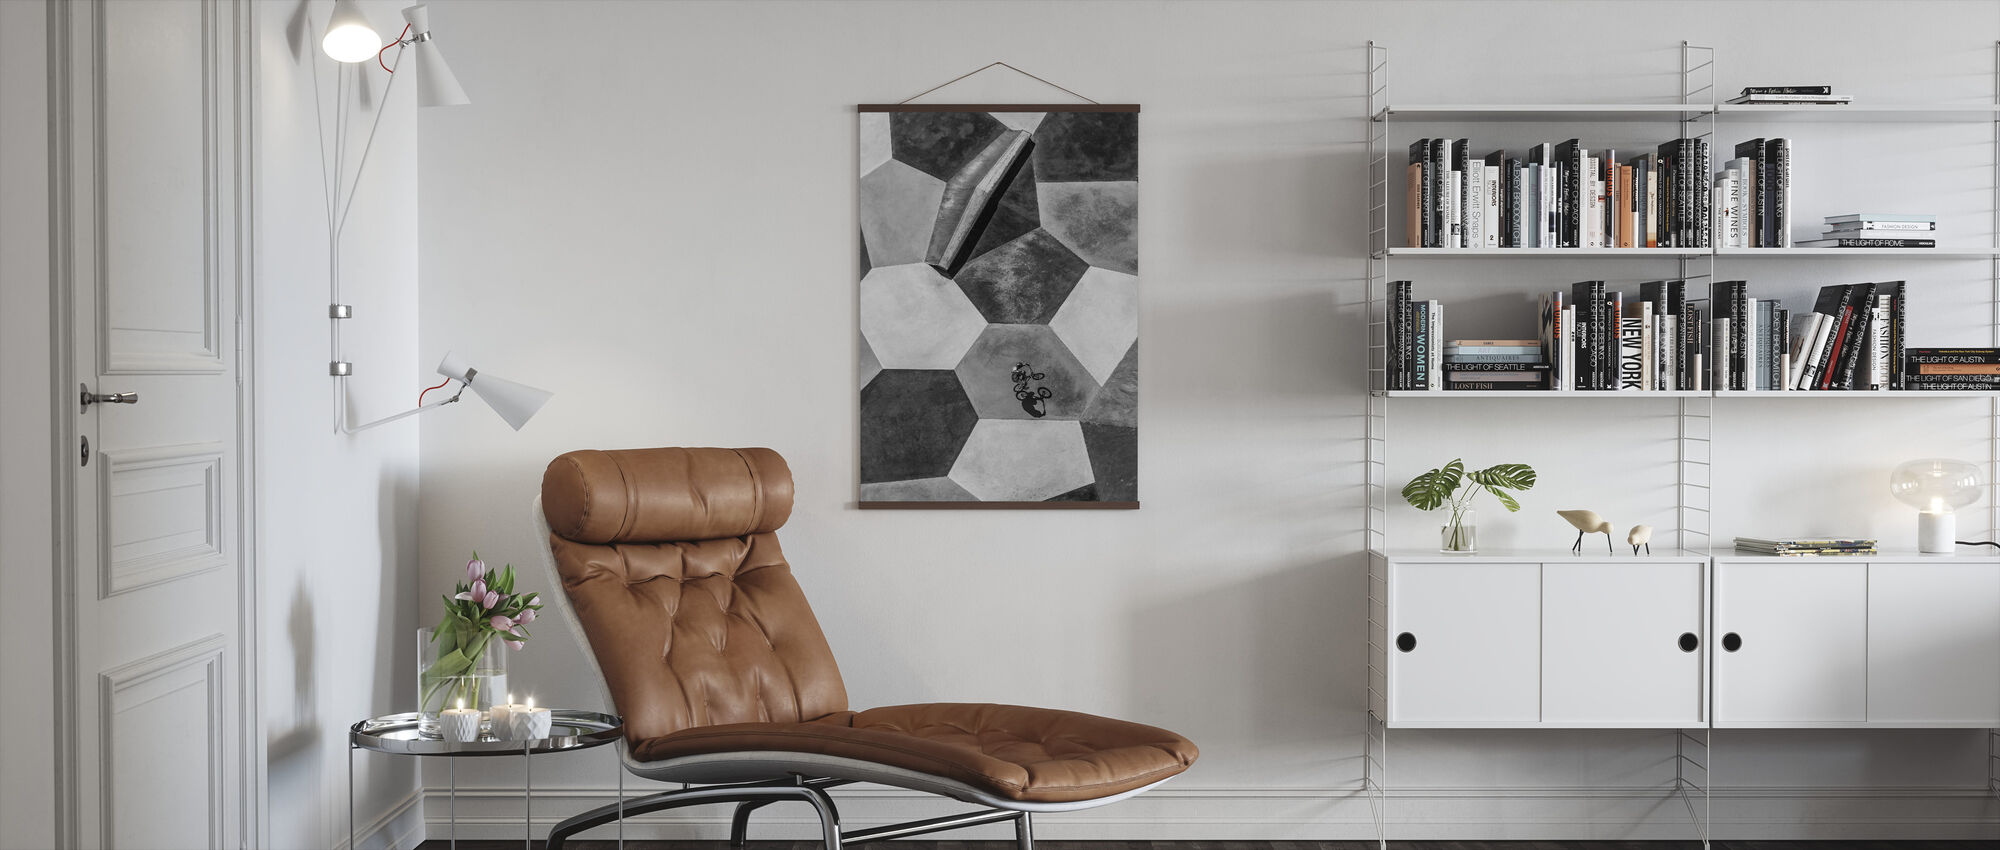 Lonely Rider - Poster - Living Room